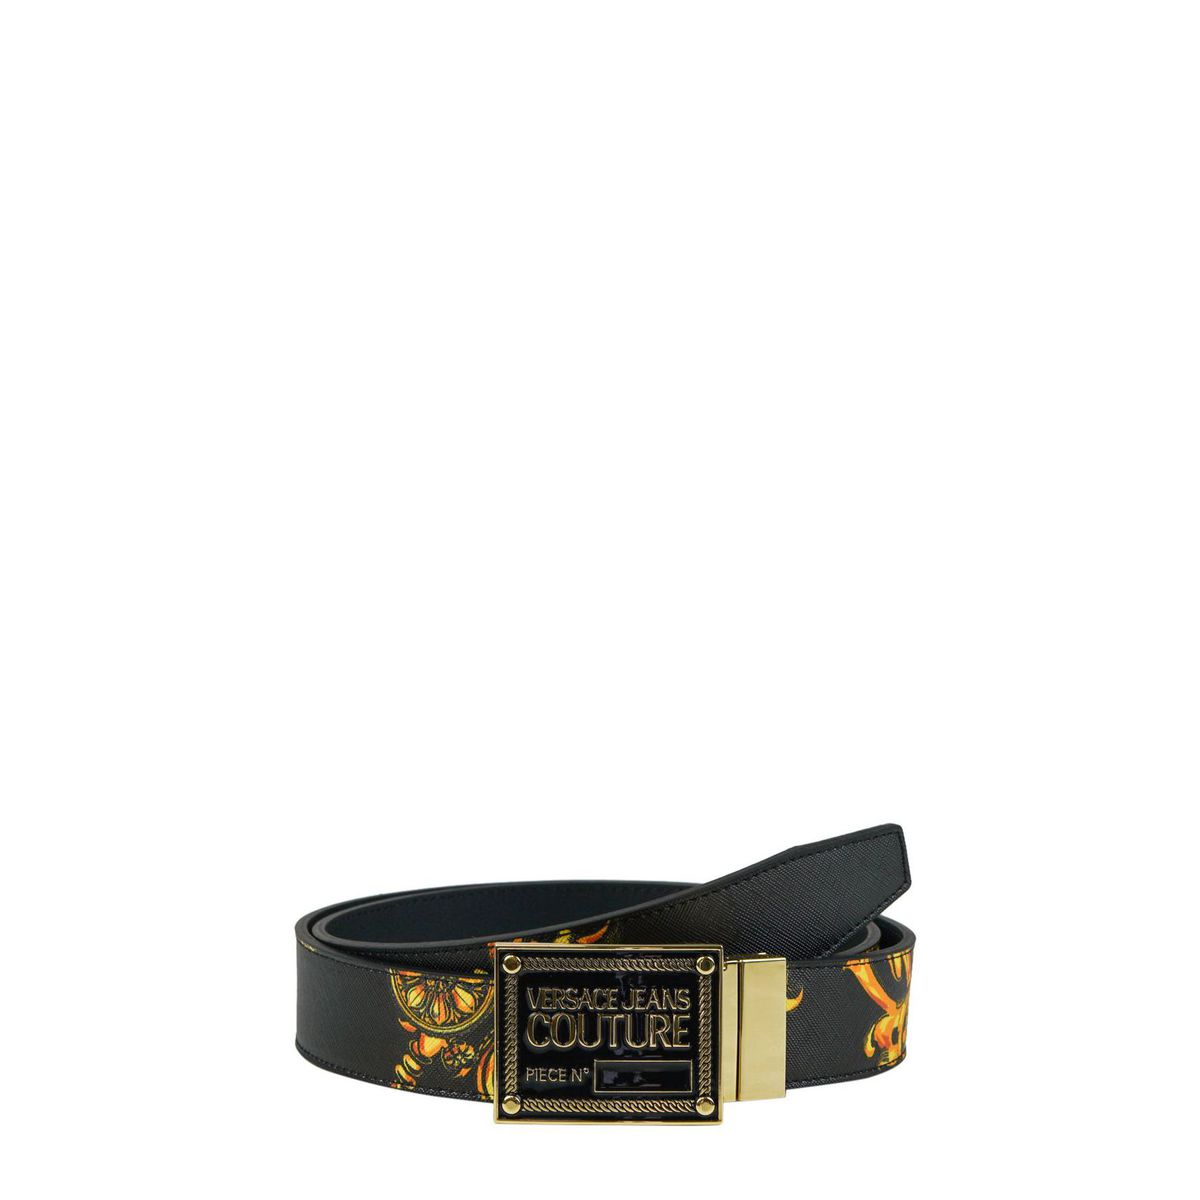 1. Versace Jeans Couture belt in baroque patterned saffiano Black Versace Jeans Couture